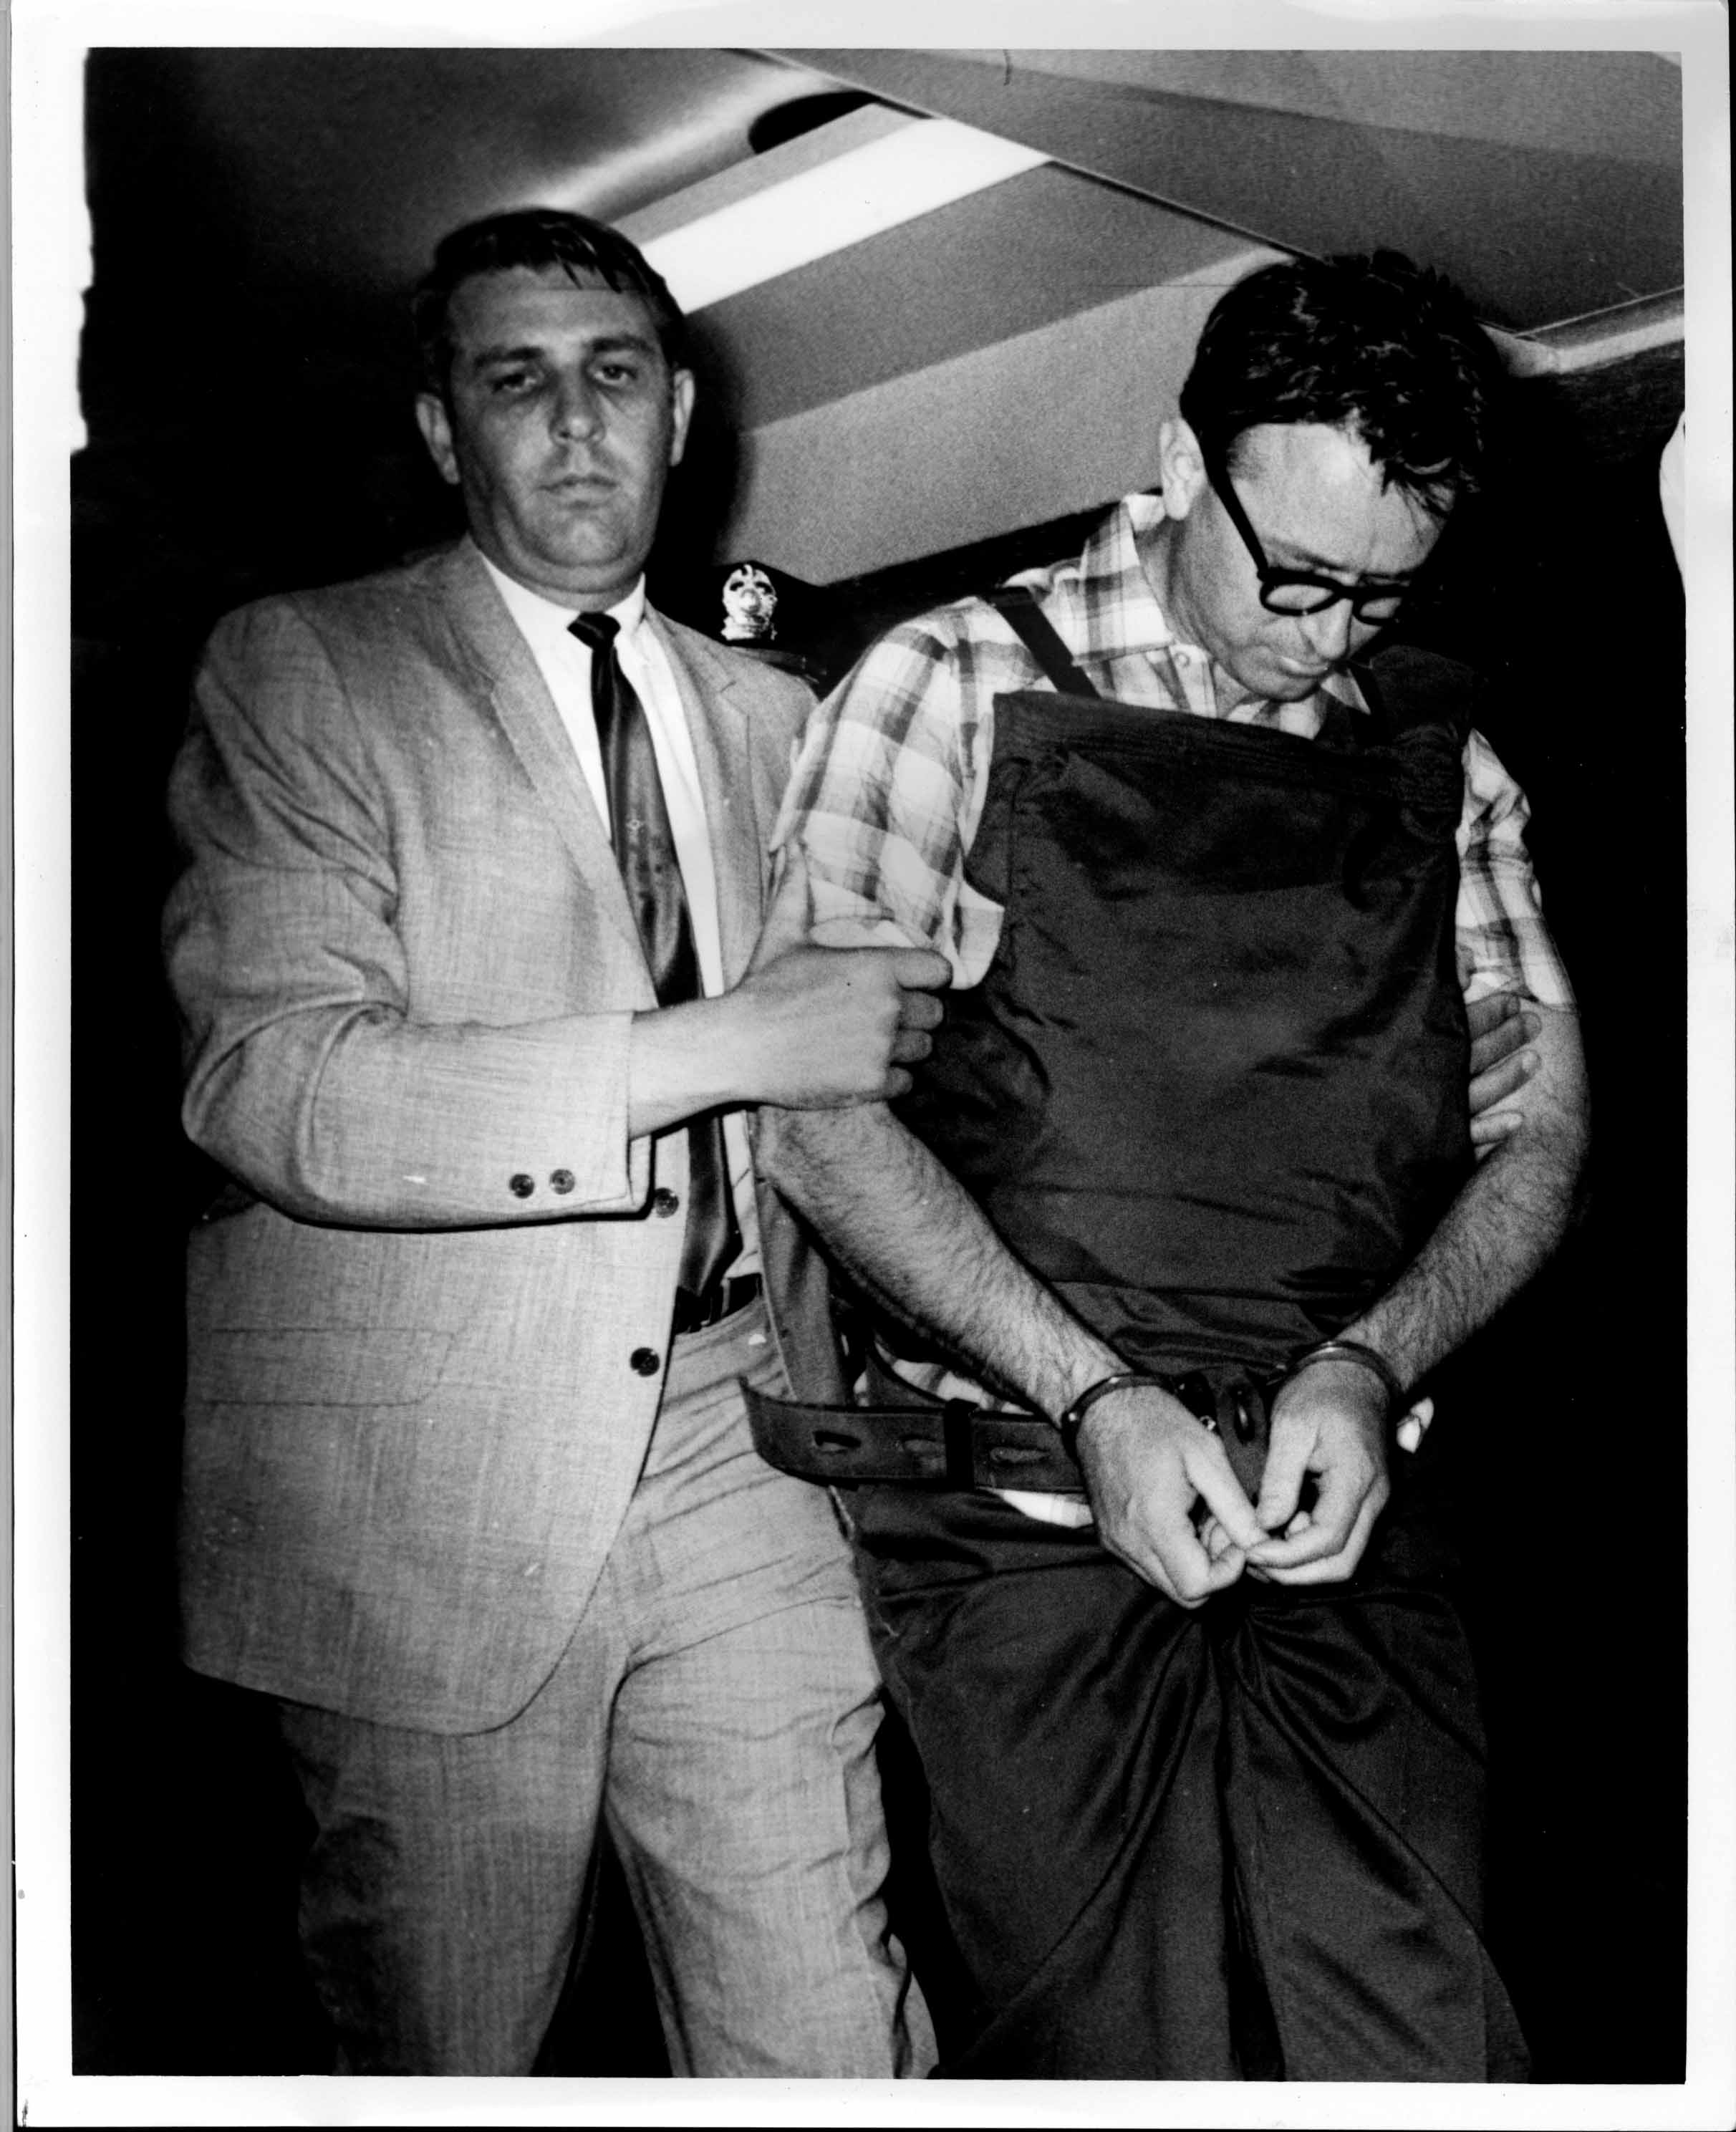 05James Earl Ray being brought into jail 05.jpg